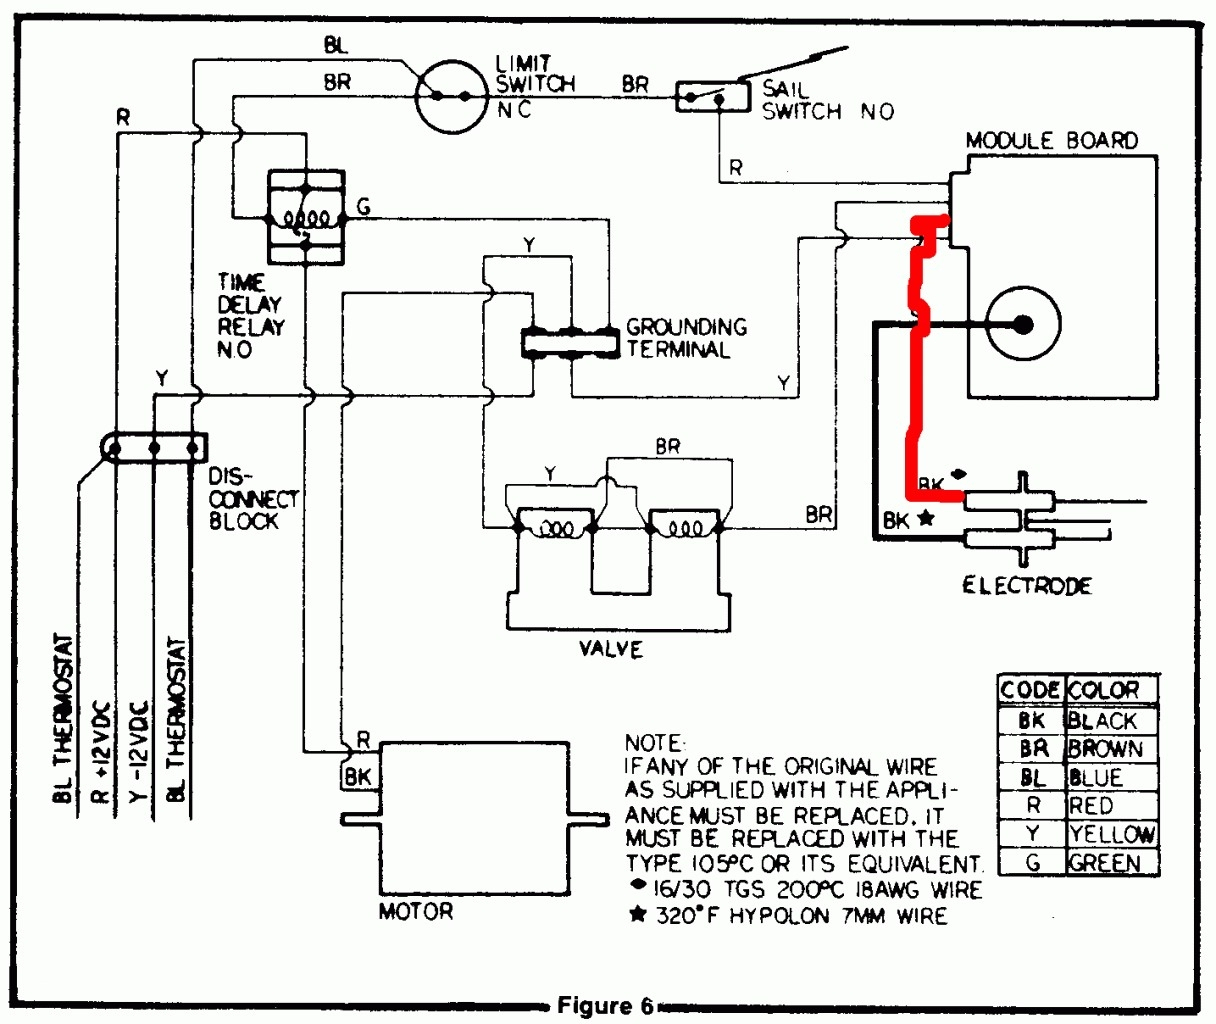 hight resolution of 30 rv wiring diagram coleman mach thermostat wiring diagrams data 30 rv plug wiring coleman mach rv air conditioner manual wiring 50 rv